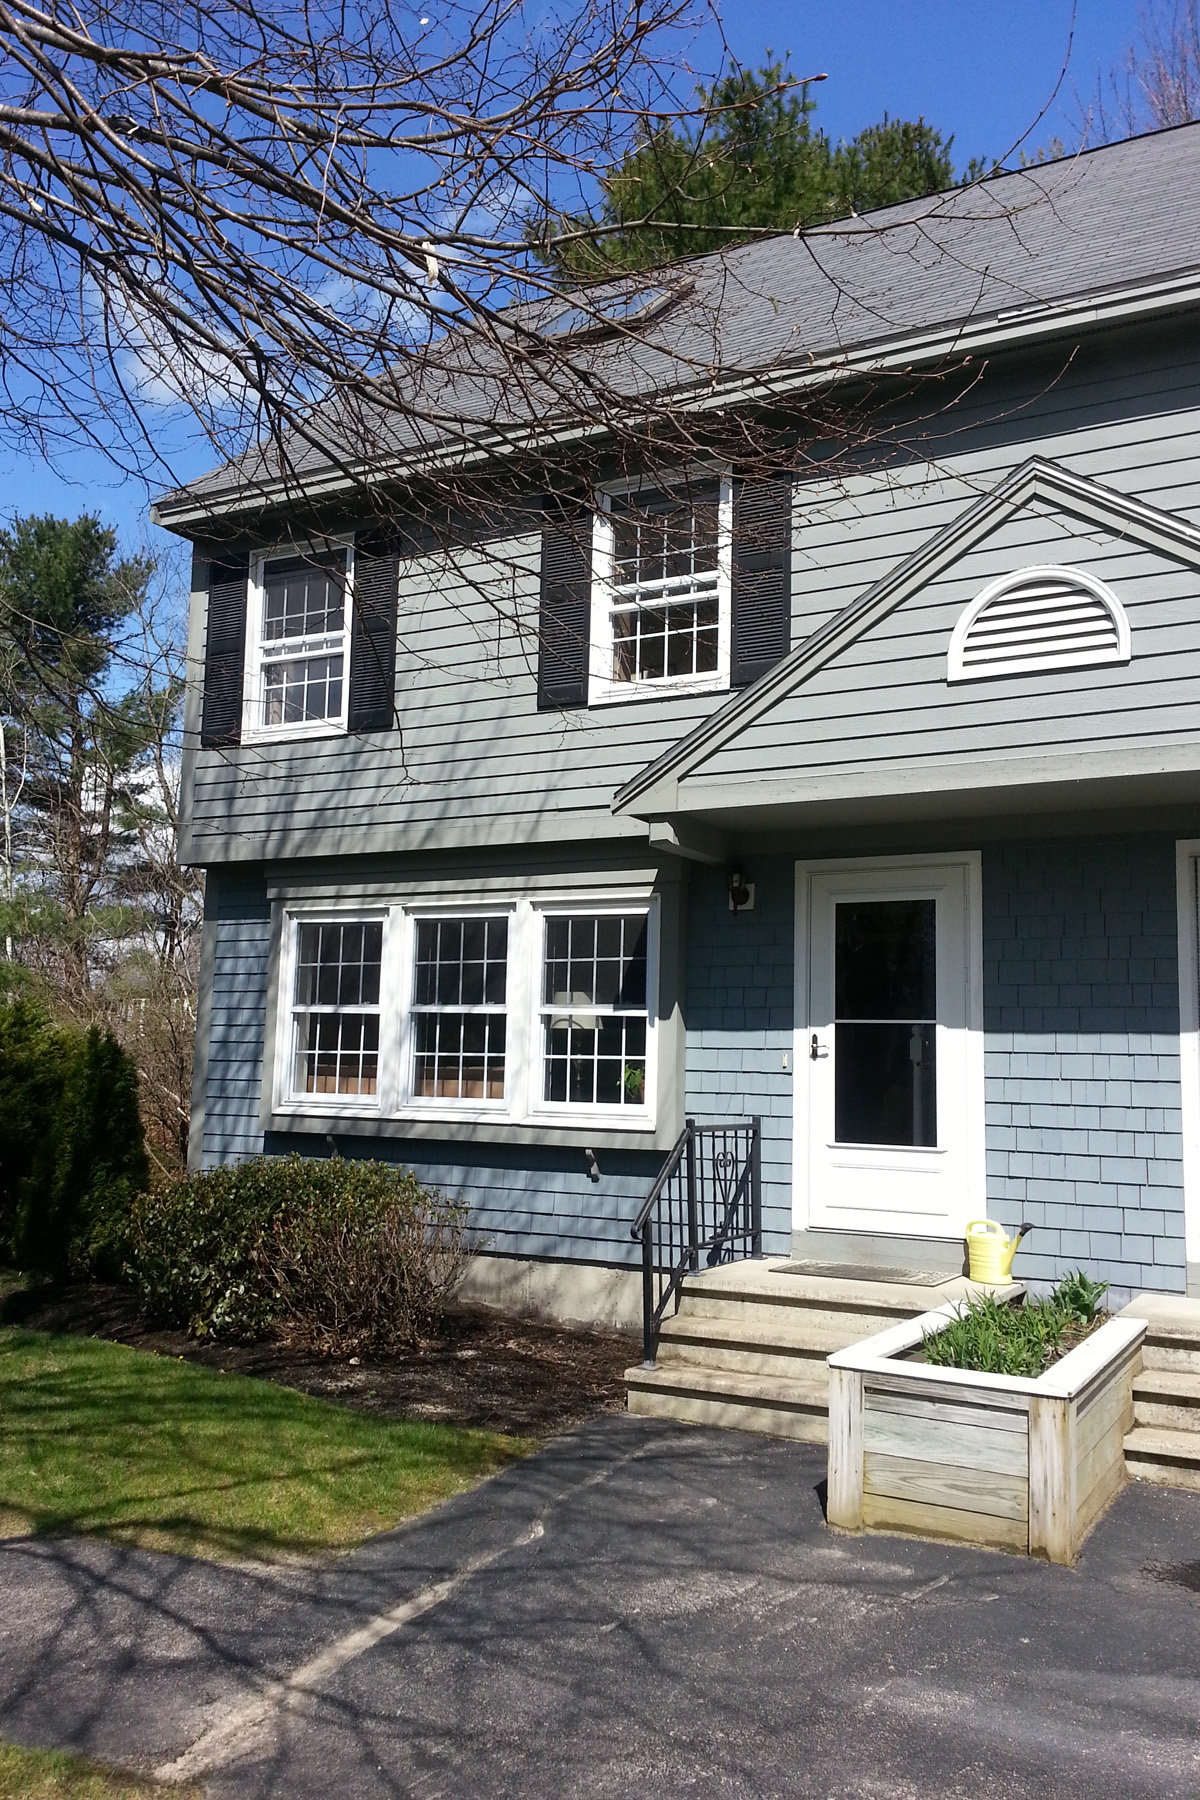 Condominium for Sale at 59 Northwood Drive, Unit#59 Portland, Maine 04103 United States